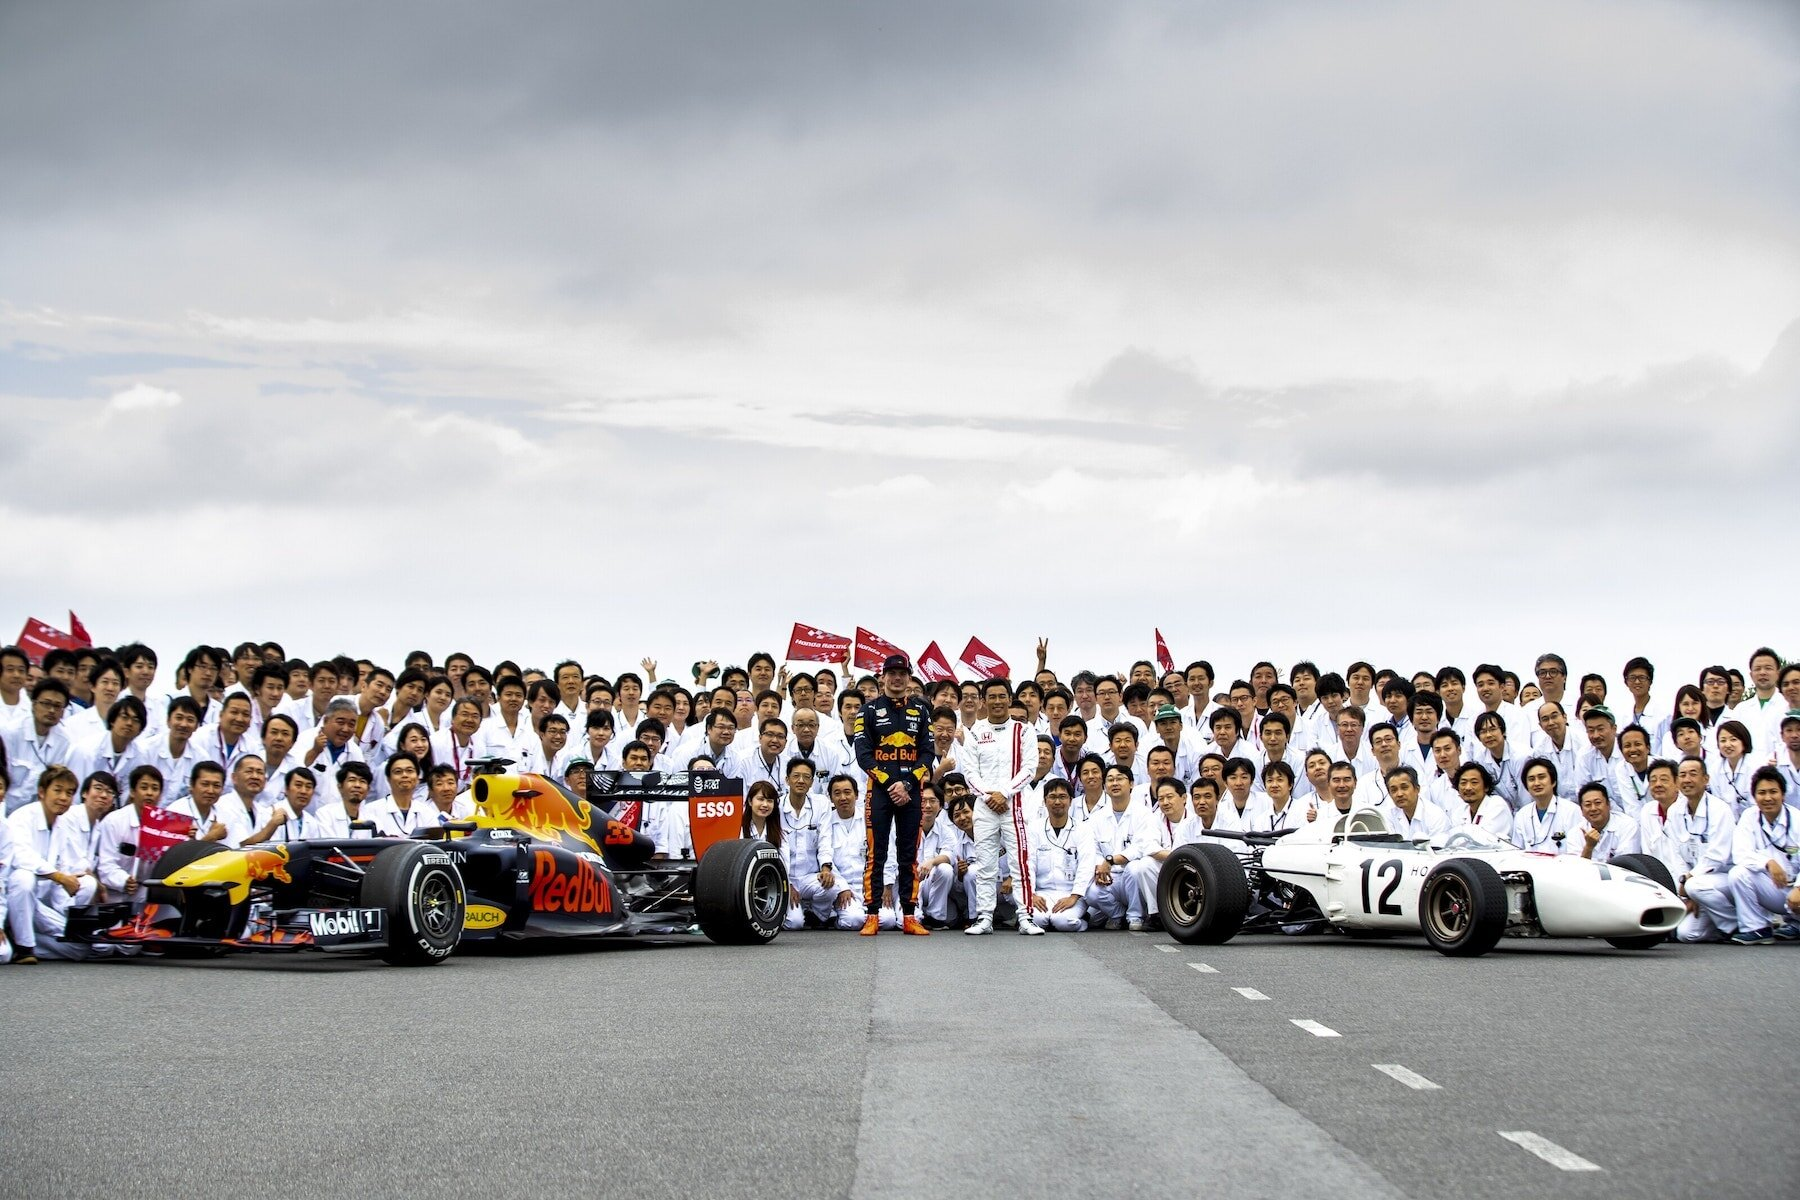 2019 Old and New RA272 and RB7 at Japan 12.jpg